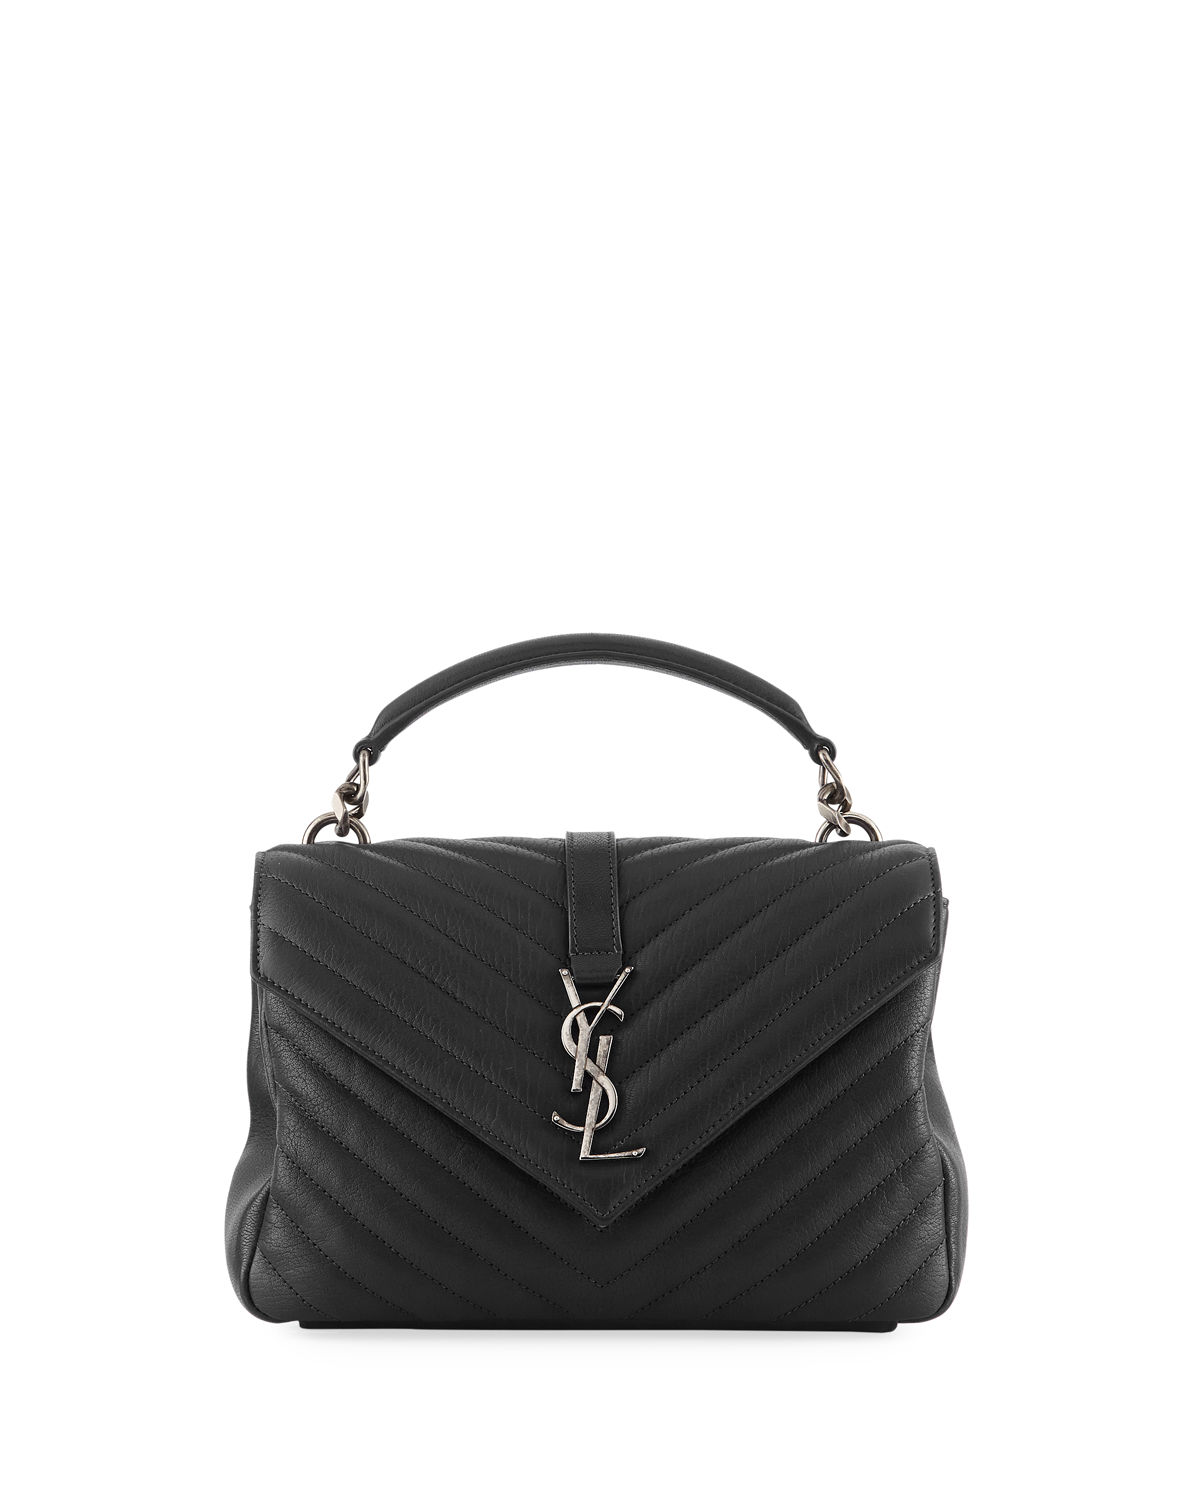 College Medium Monogram Ysl V Flap Crossbody Bag Silver Hardware